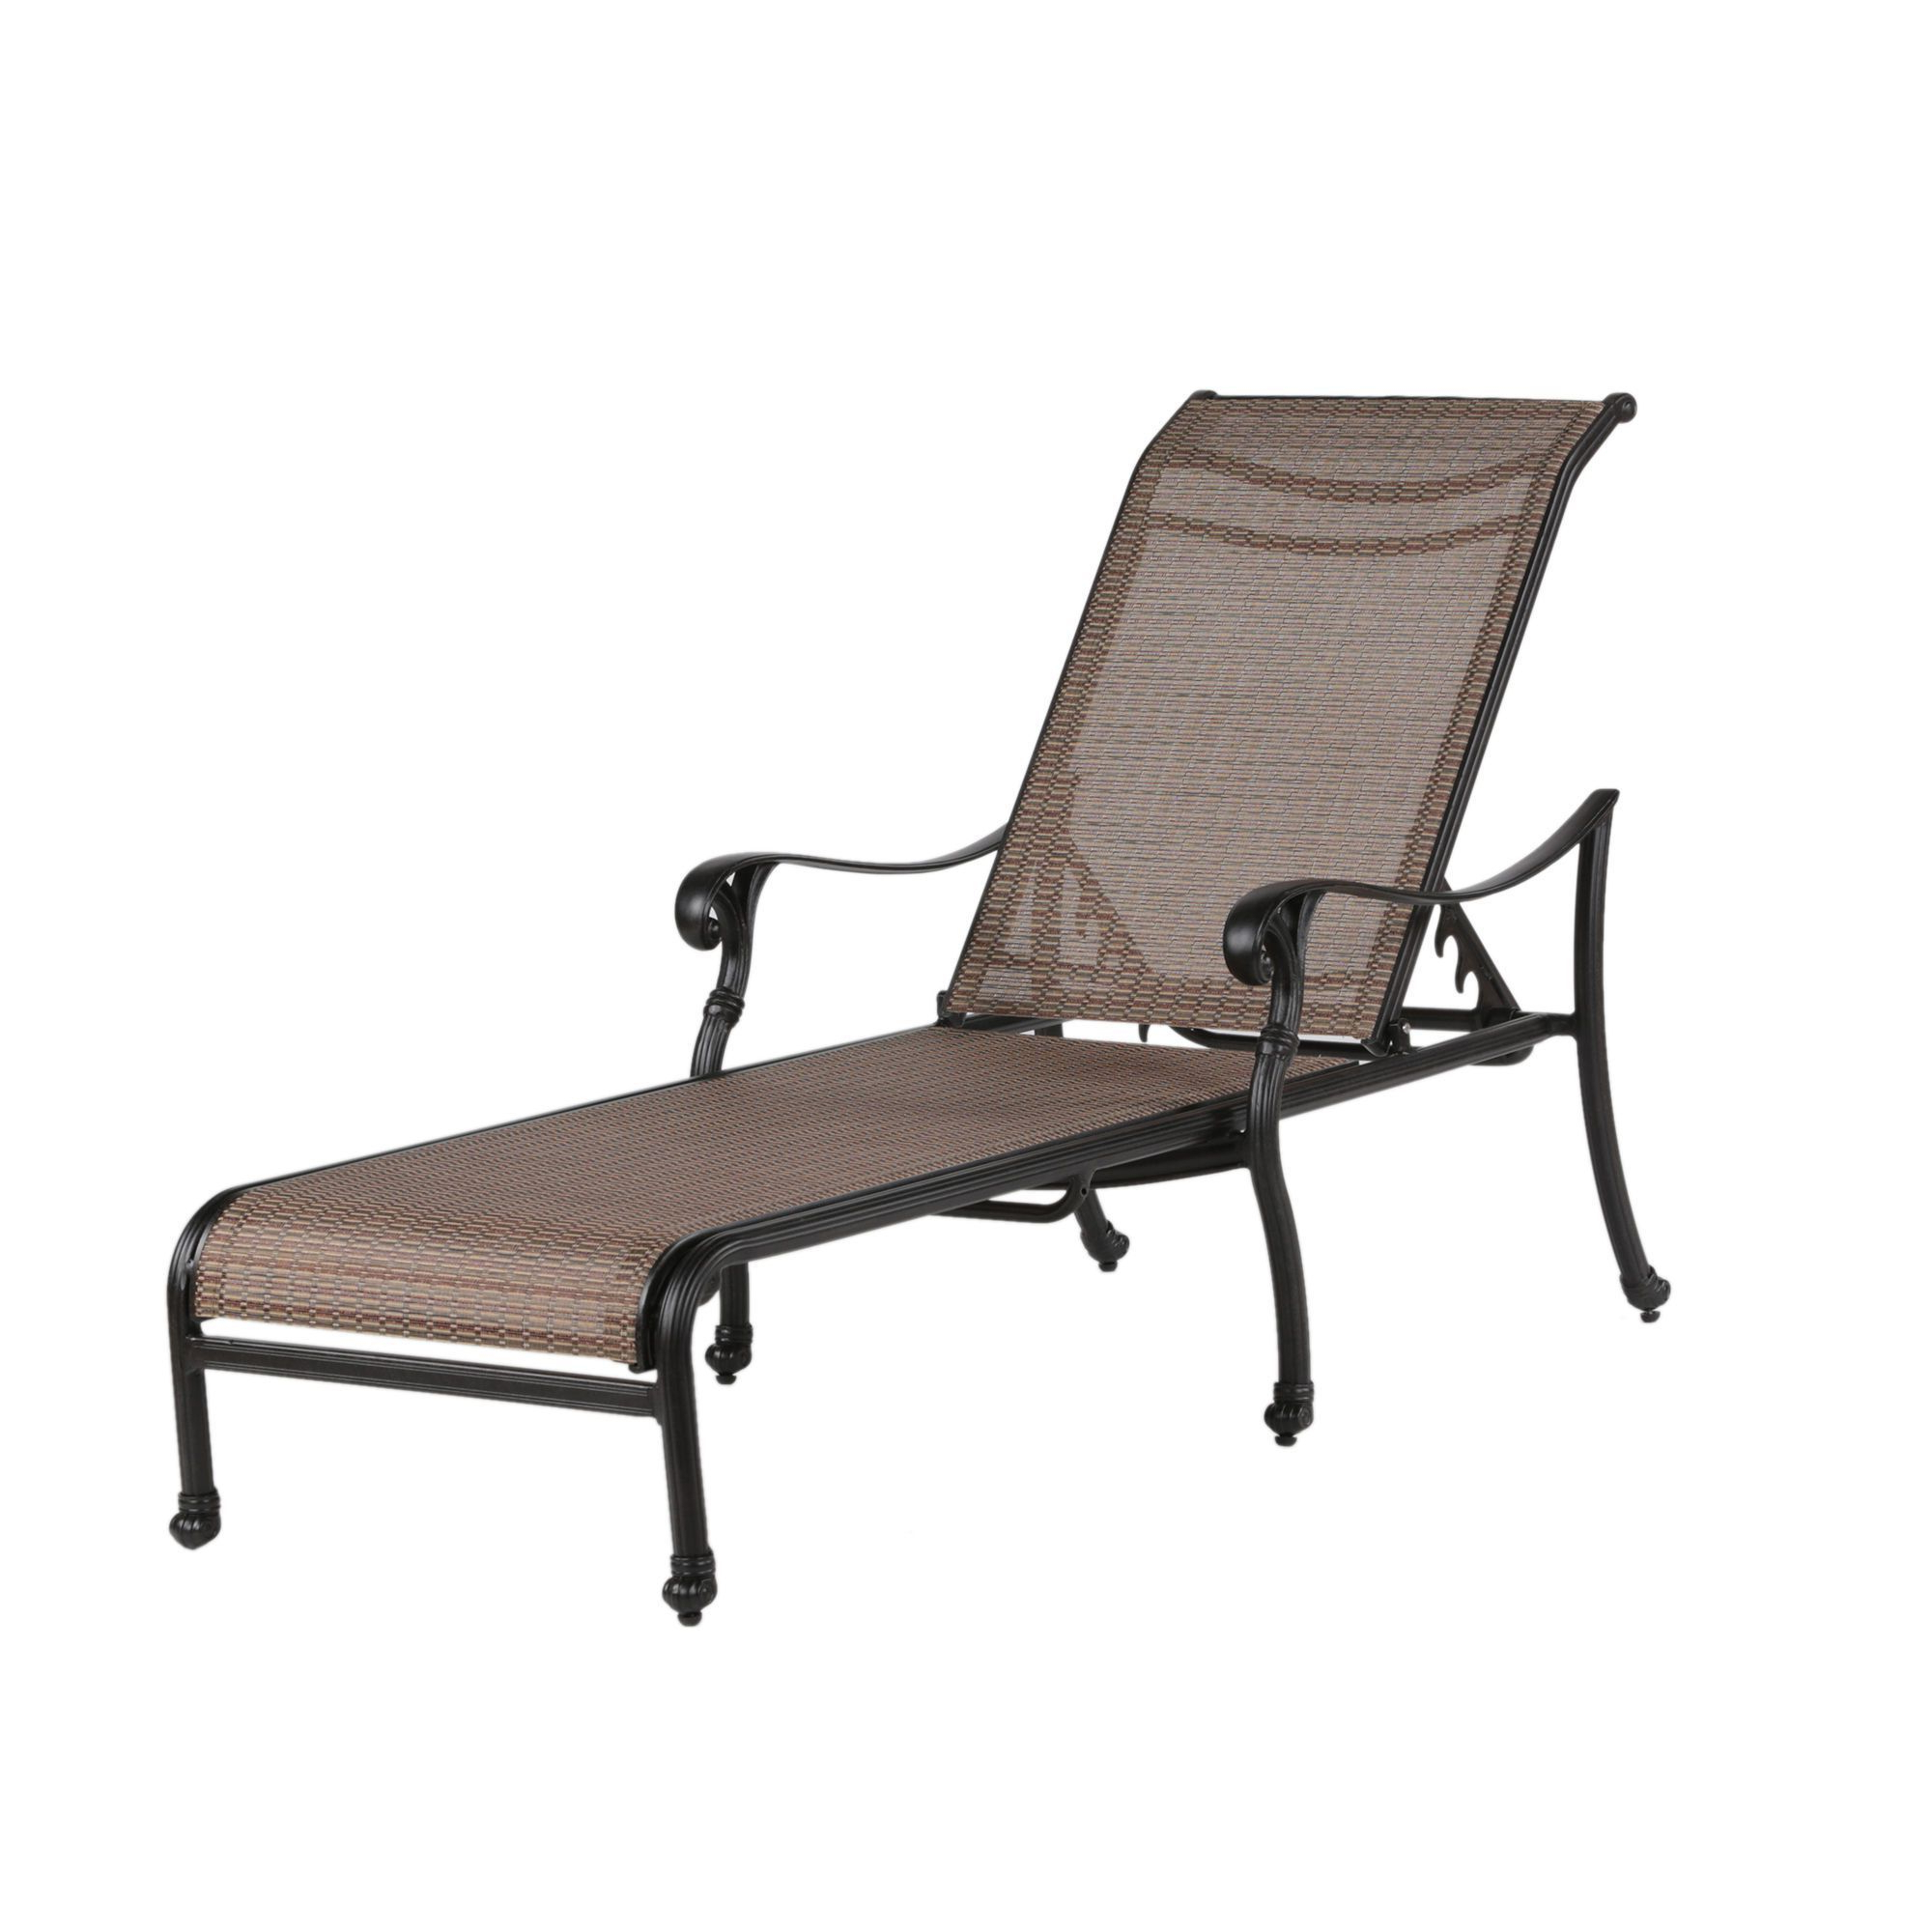 2019 Reclining Sling Lounge Chairs Regarding Yorkshire Cast Aluminum (silver) Reclining Sling Chaise (Gallery 11 of 25)